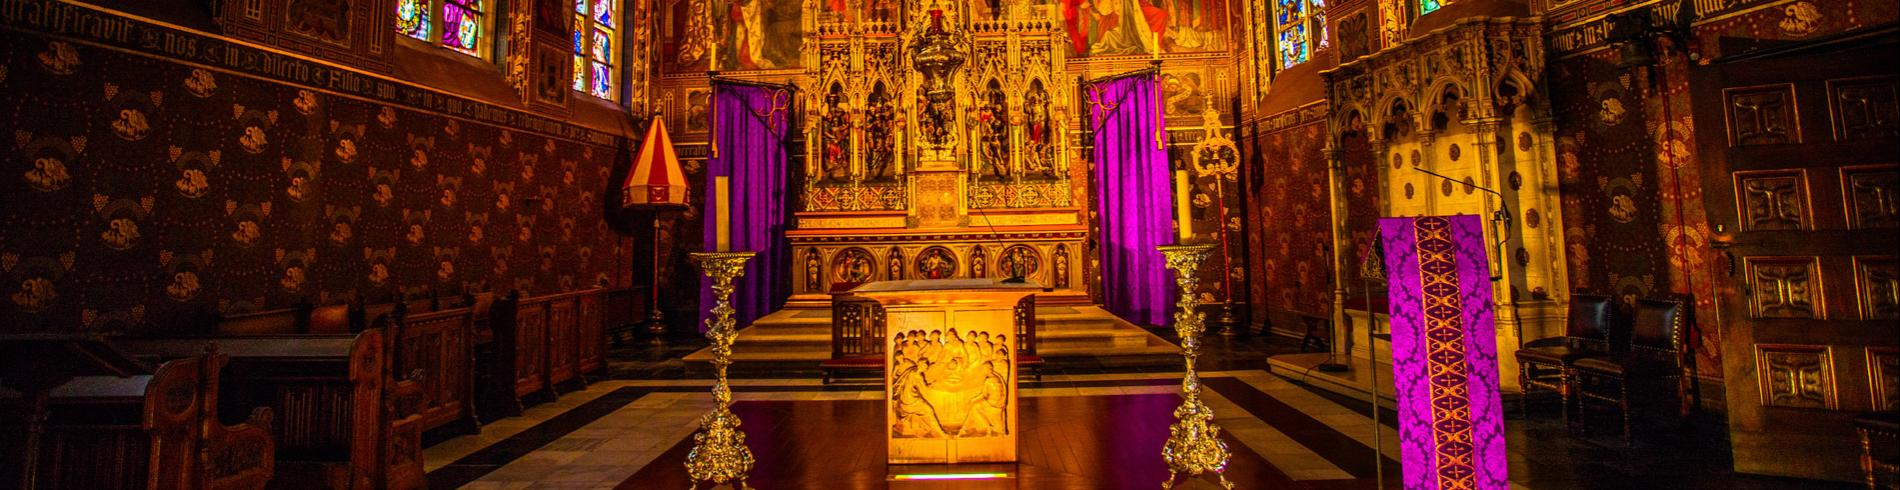 The altar in the Basilica of the Holy Blood in Bruges